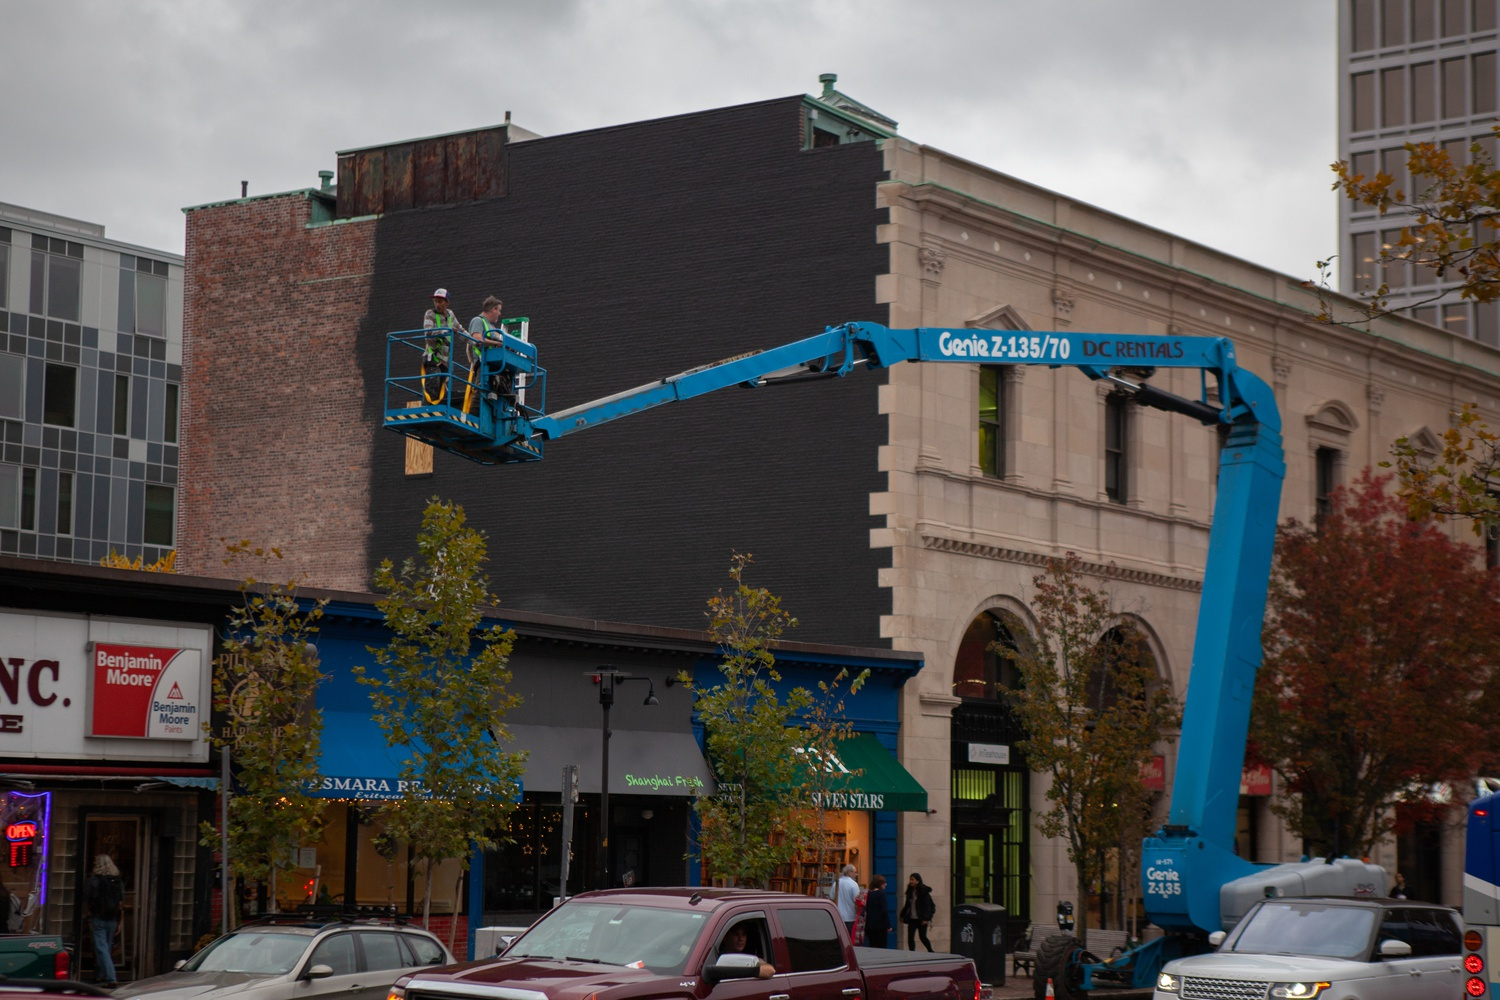 The Central Square Mural Project is an initiative spearheaded by the Central Square Business Association and the Cambridge Arts Council.